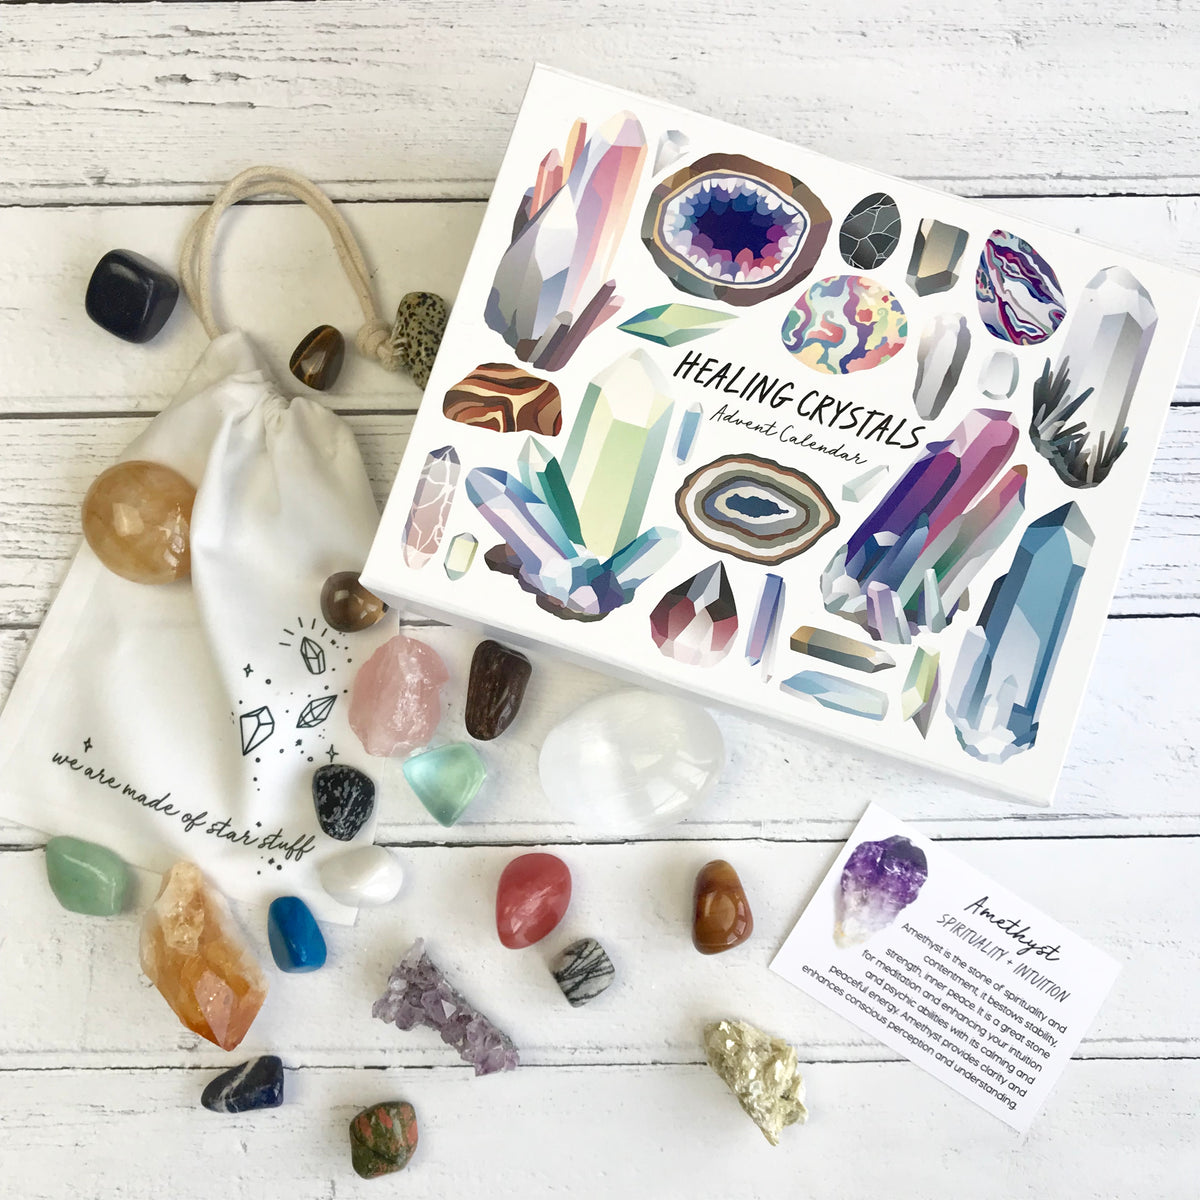 Healing Crystal Advent Calendar - a Unique gift and original gift from Auntie Mims ideal for Christmas